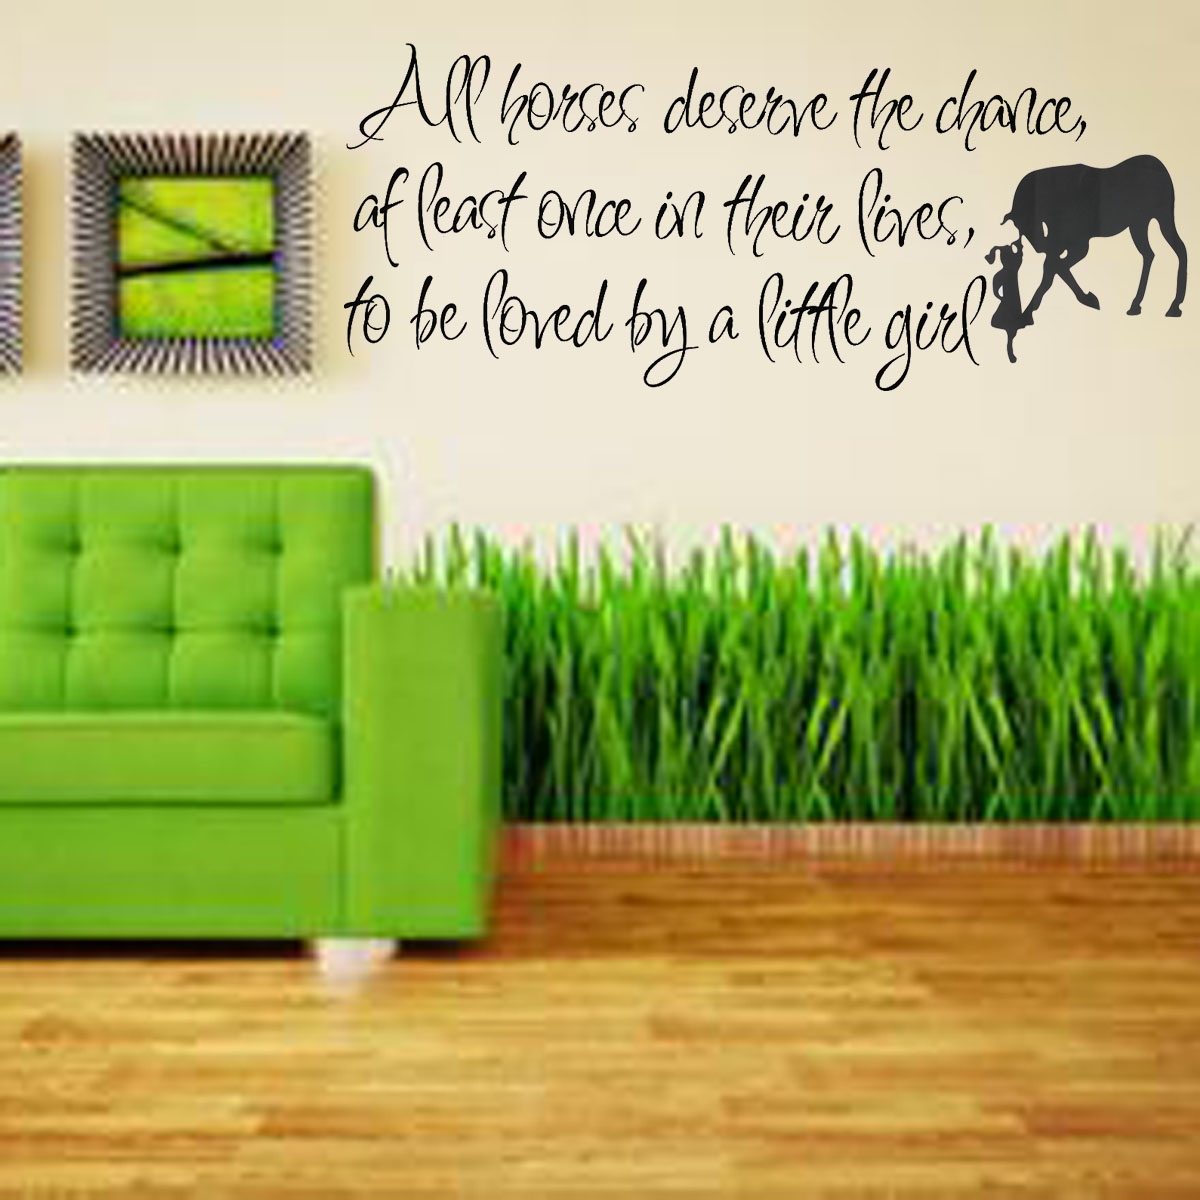 Removable Vinyl Art Wall Stickers Decal DIY Room Decor